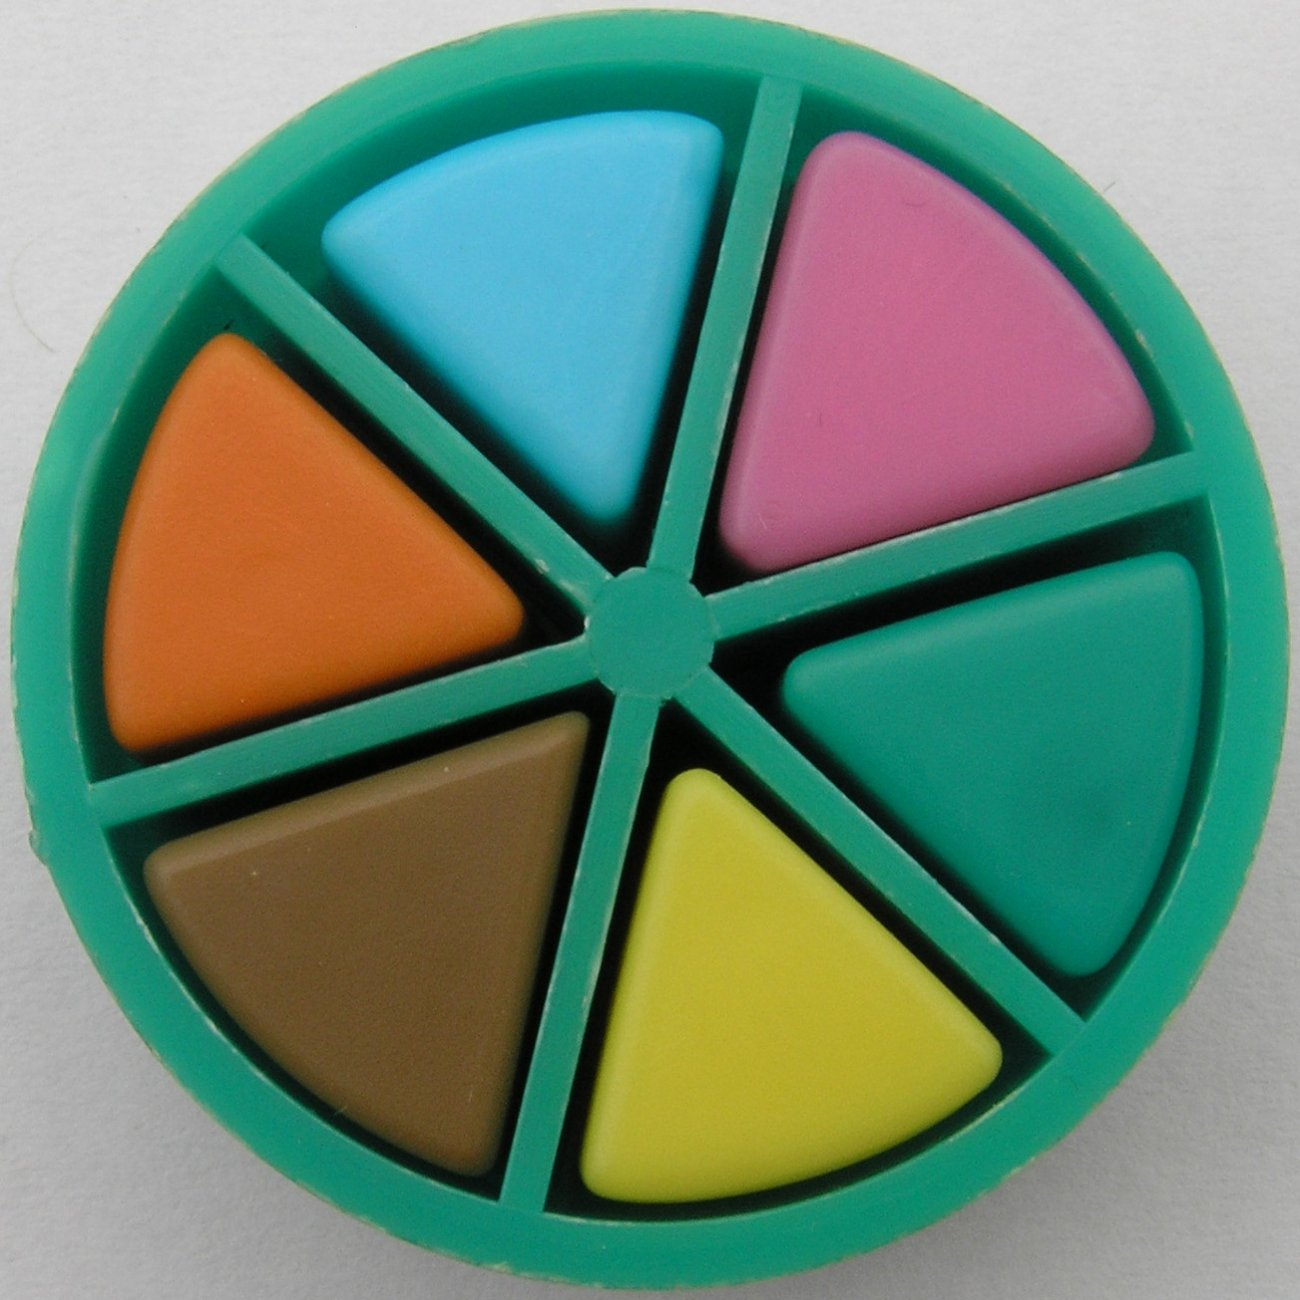 Trivial-Pursuit-1.jpeg